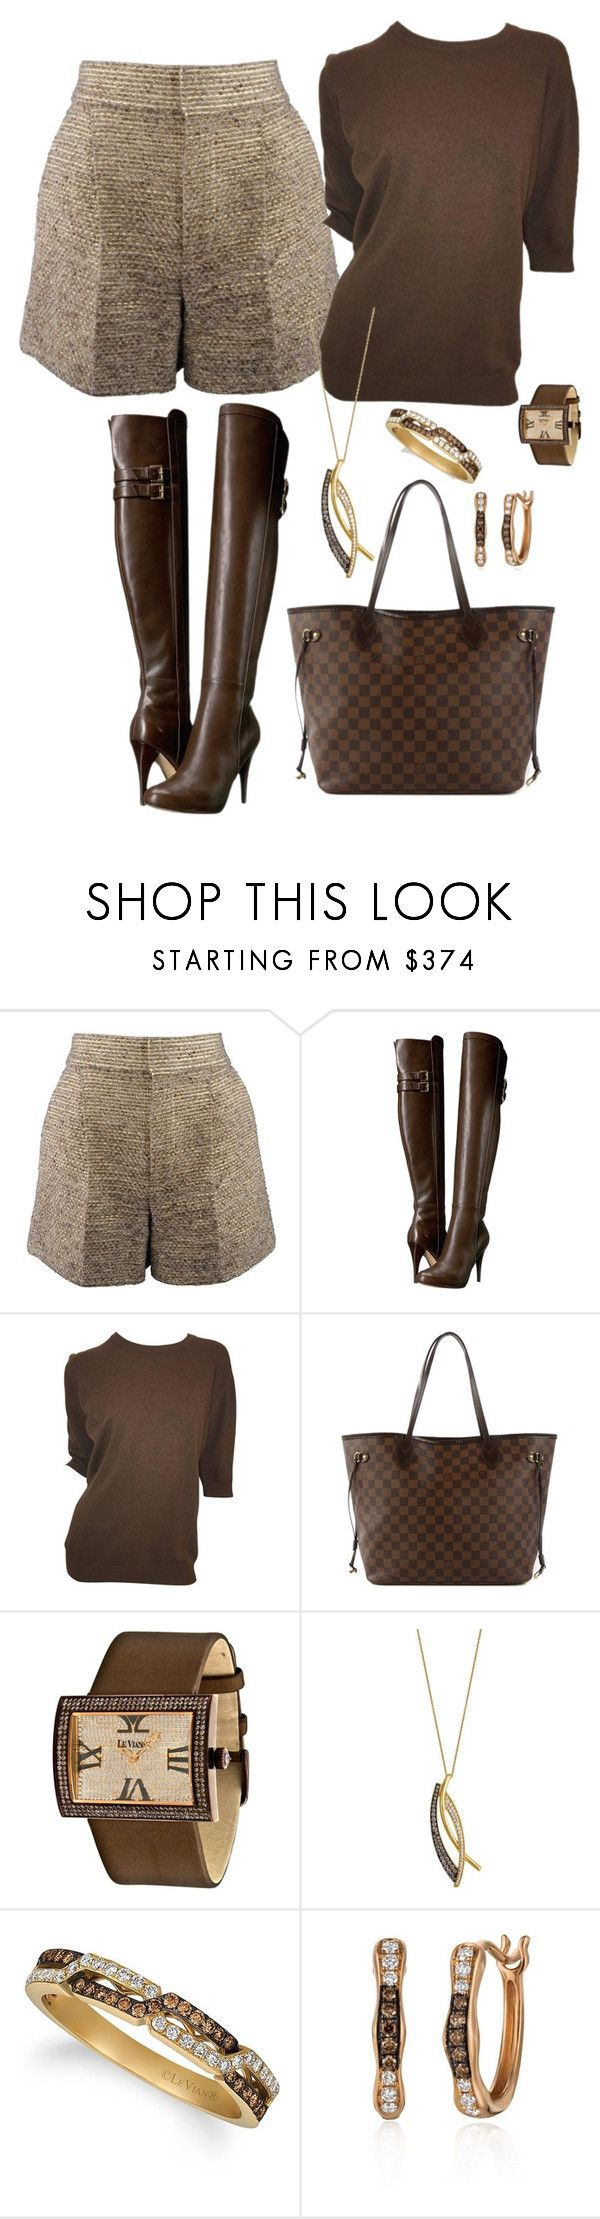 """""""shorts and boots"""" by mynextlife ❤ liked on Polyvore featuring Chloé, MICHAEL Michael Kors, Chanel, Louis Vuitton and LE VIAN"""